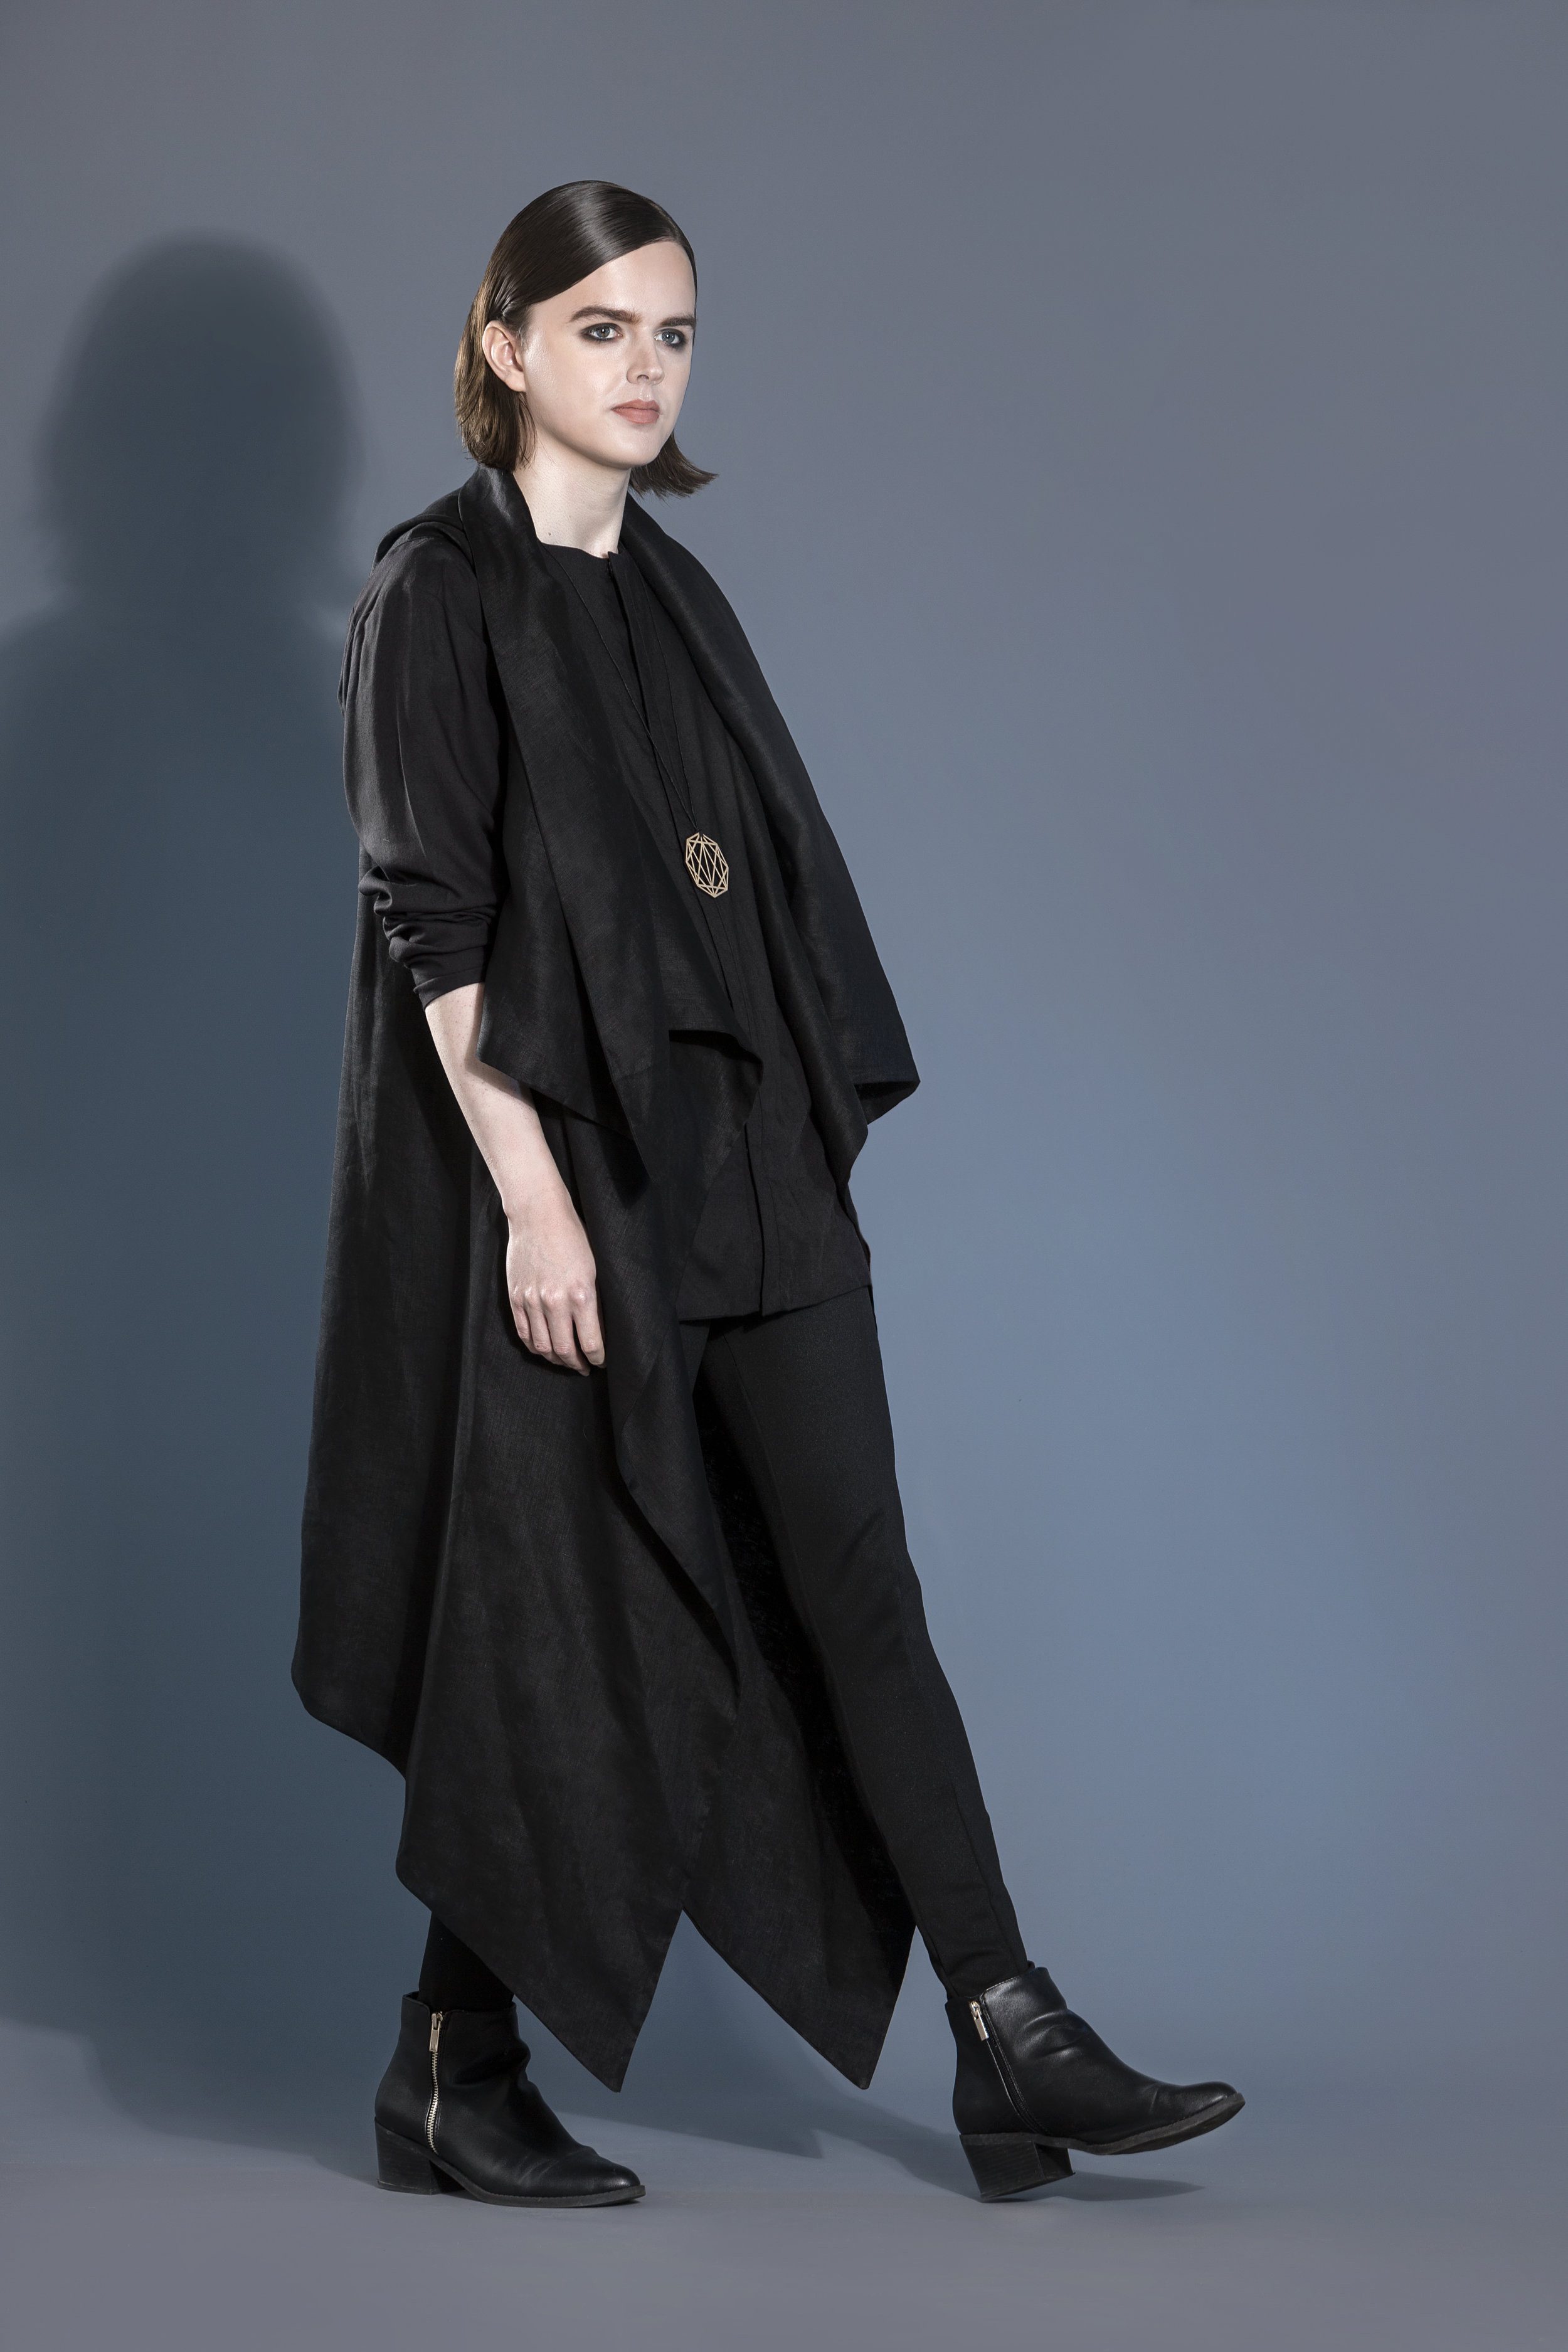 zaramia-ava-zaramiaava-leeds-fashion-designer-ethical-sustainable-black-jacket-drape-layers-dress-linen-unisex-genderless-abbeyhousemuseam-heshethey-1.jpg